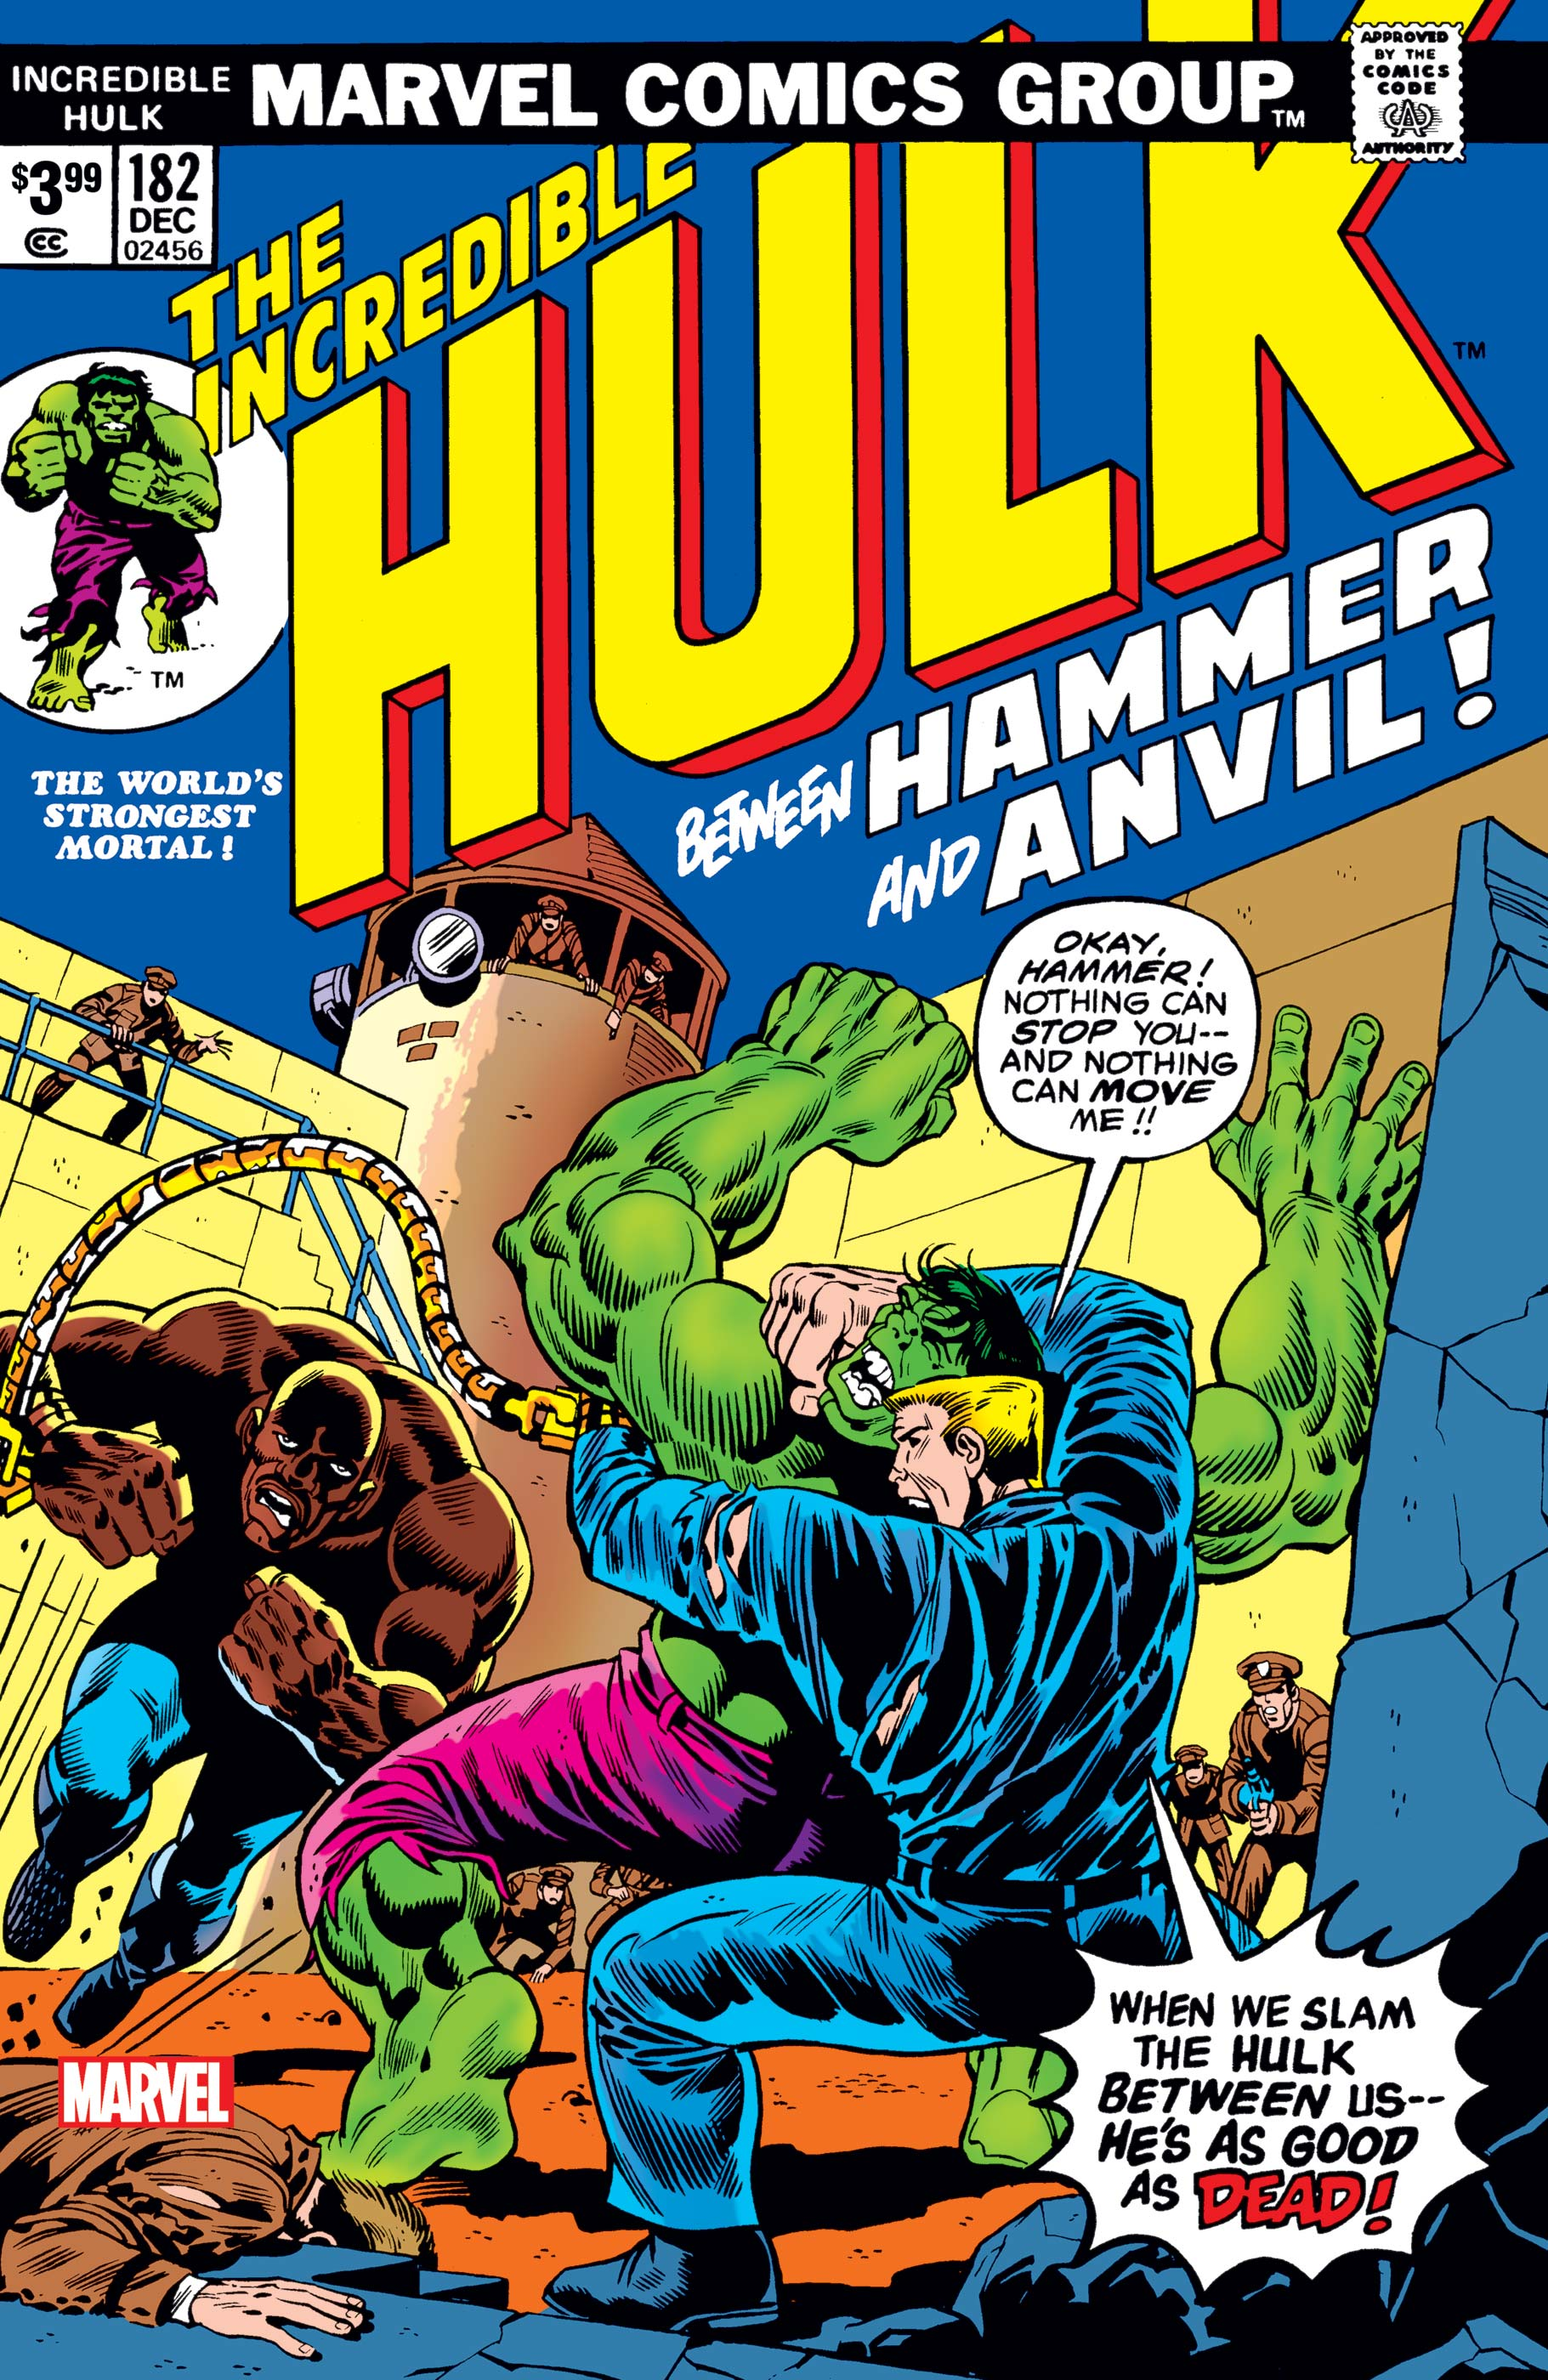 Incredible Hulk: Facsimile Edition (2020) #182